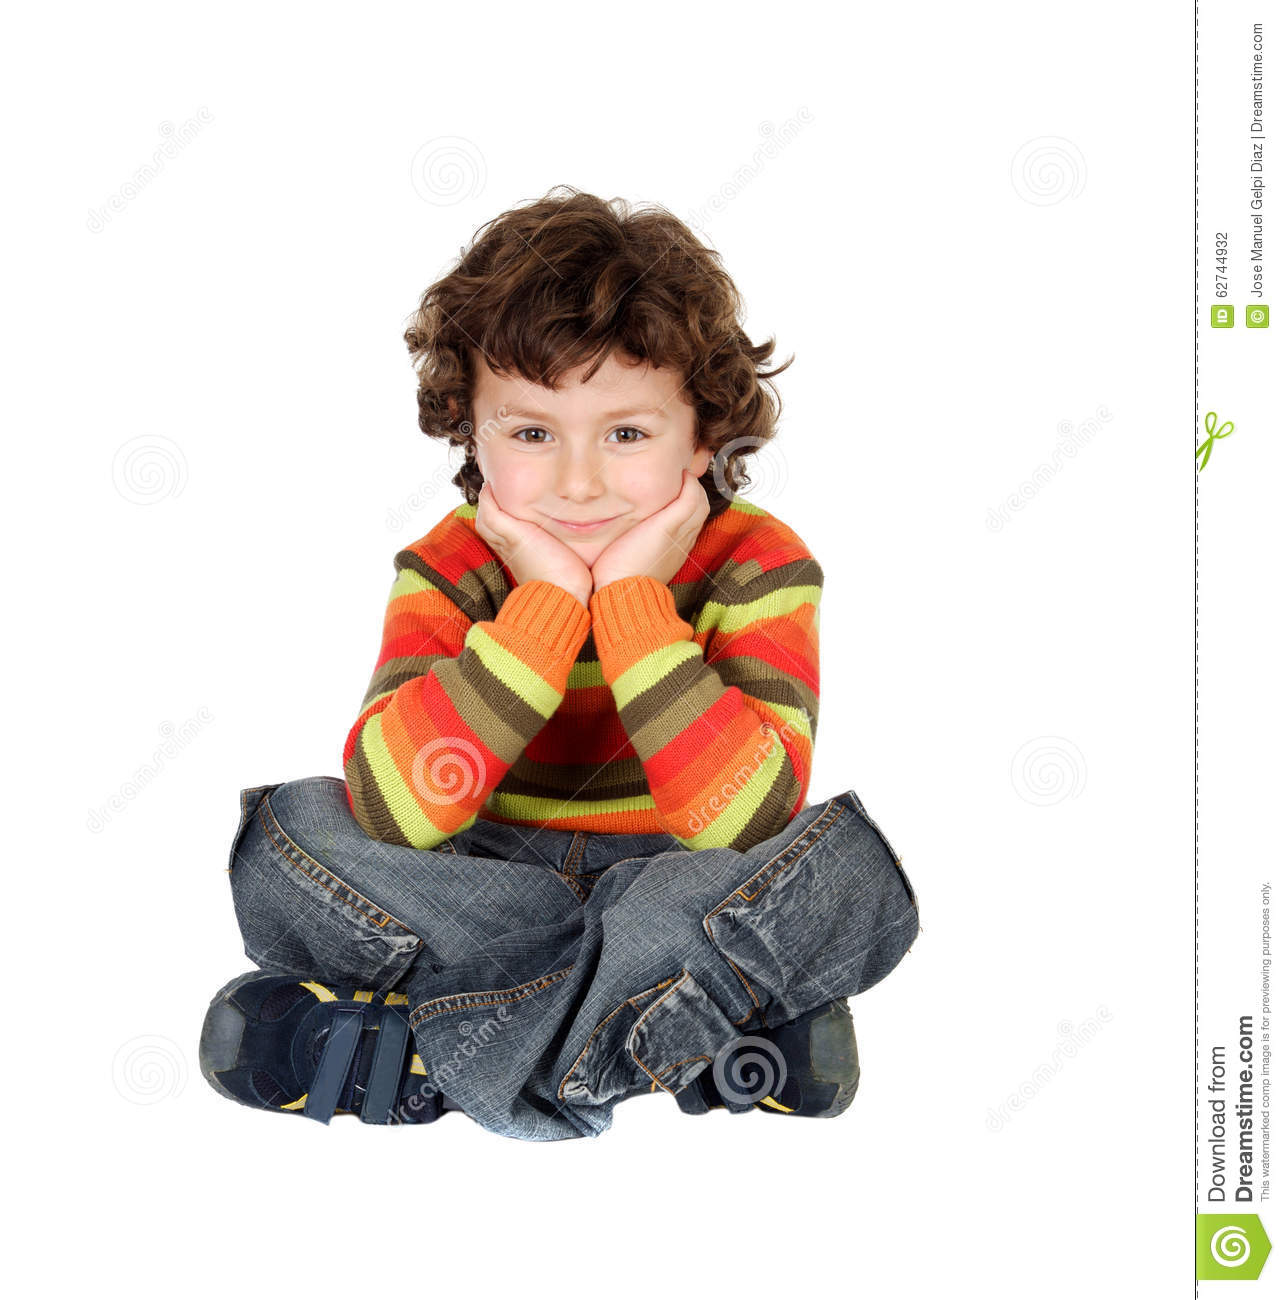 Boy with seven years old sitting on the white floor thinking